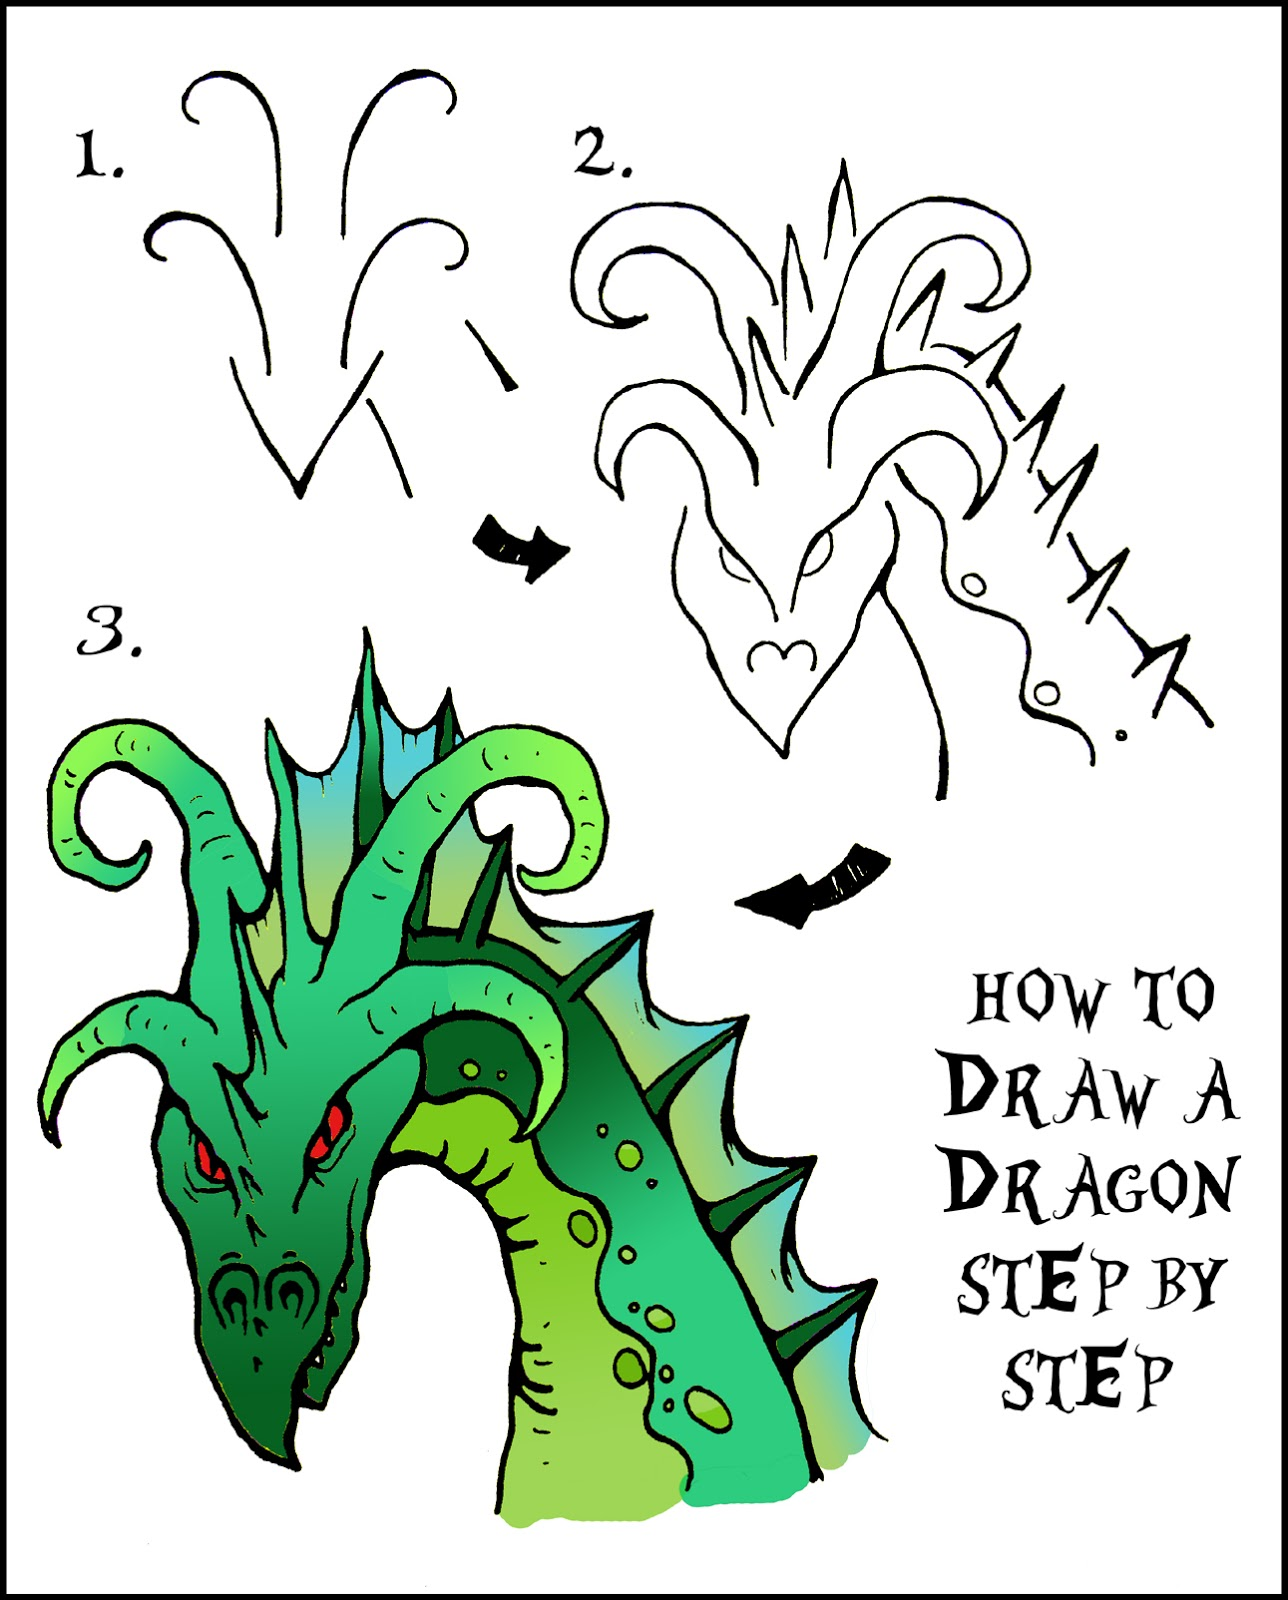 How To Draw A Dragon Step By Step Easy How To Draw A Chinese ...